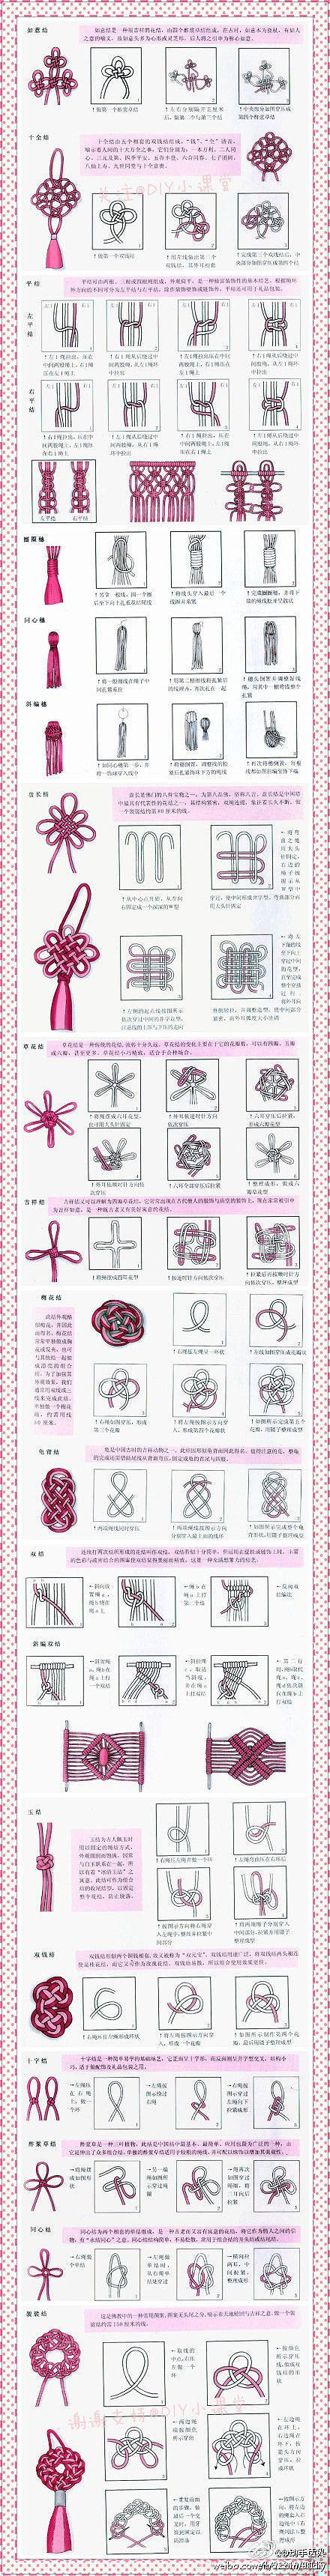 Different Knots for macrame